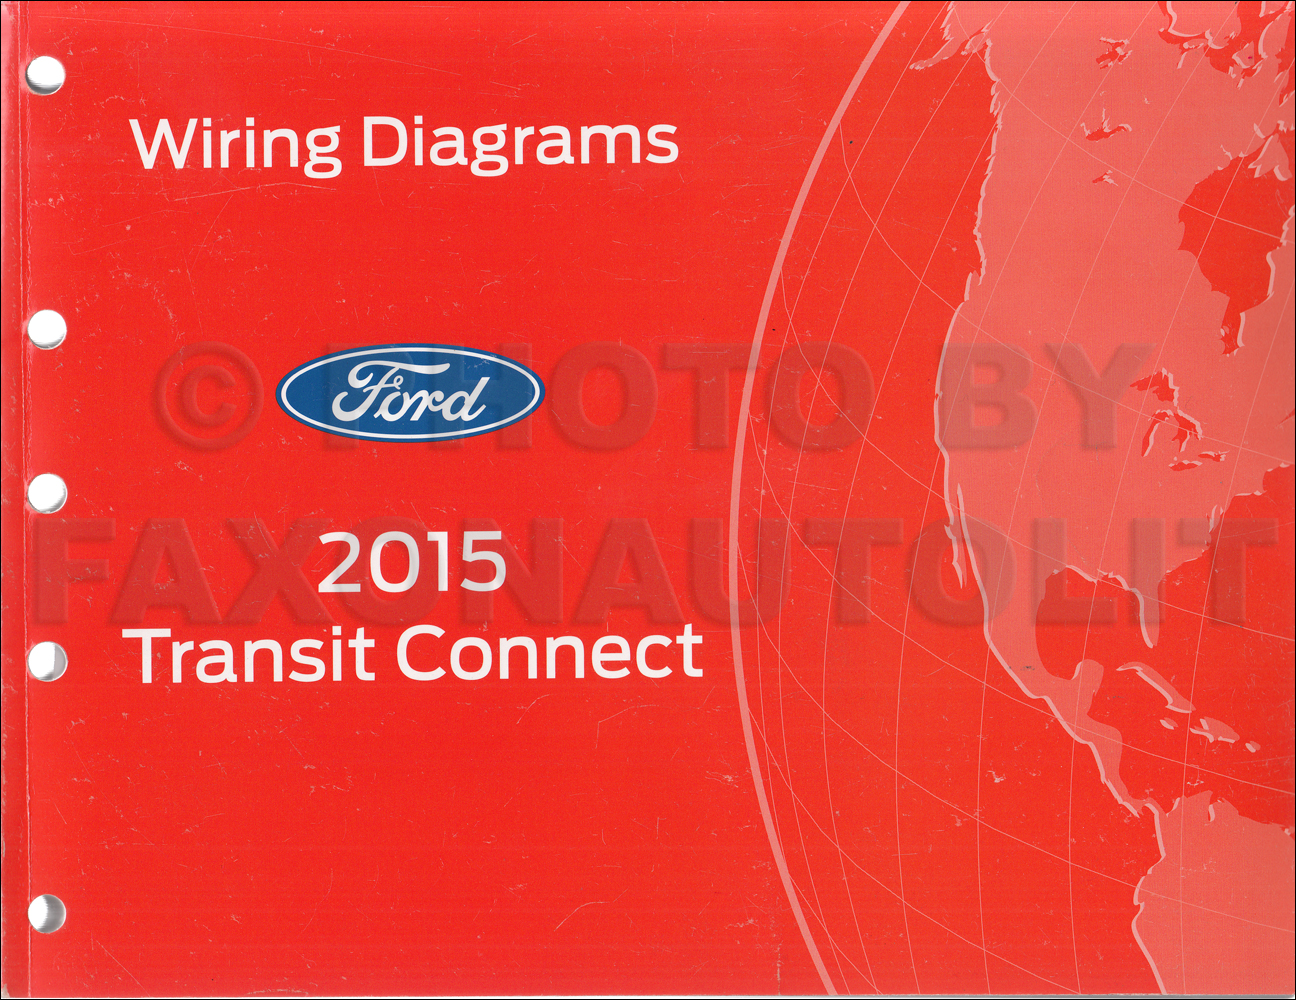 ford transit wiring diagram 1991 toyota 4runner stereo 2015 connect manual original